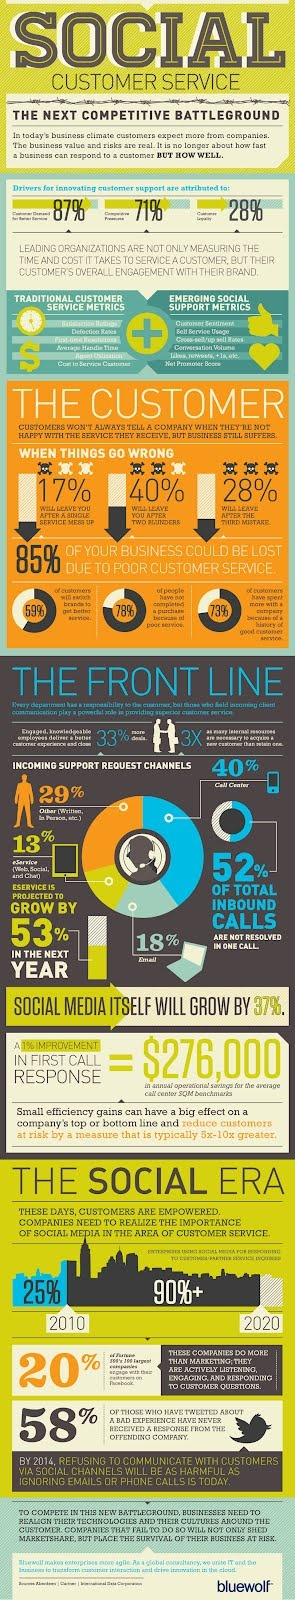 Social media has changed many things, but it's perhaps in the field of customer service that the greatest strides have been made. In today's social world, ignoring or downplaying complaints can be a disaster for even the most well-established organizations.  This infographic takes a closer look at why social customer service will be the next competitive background.